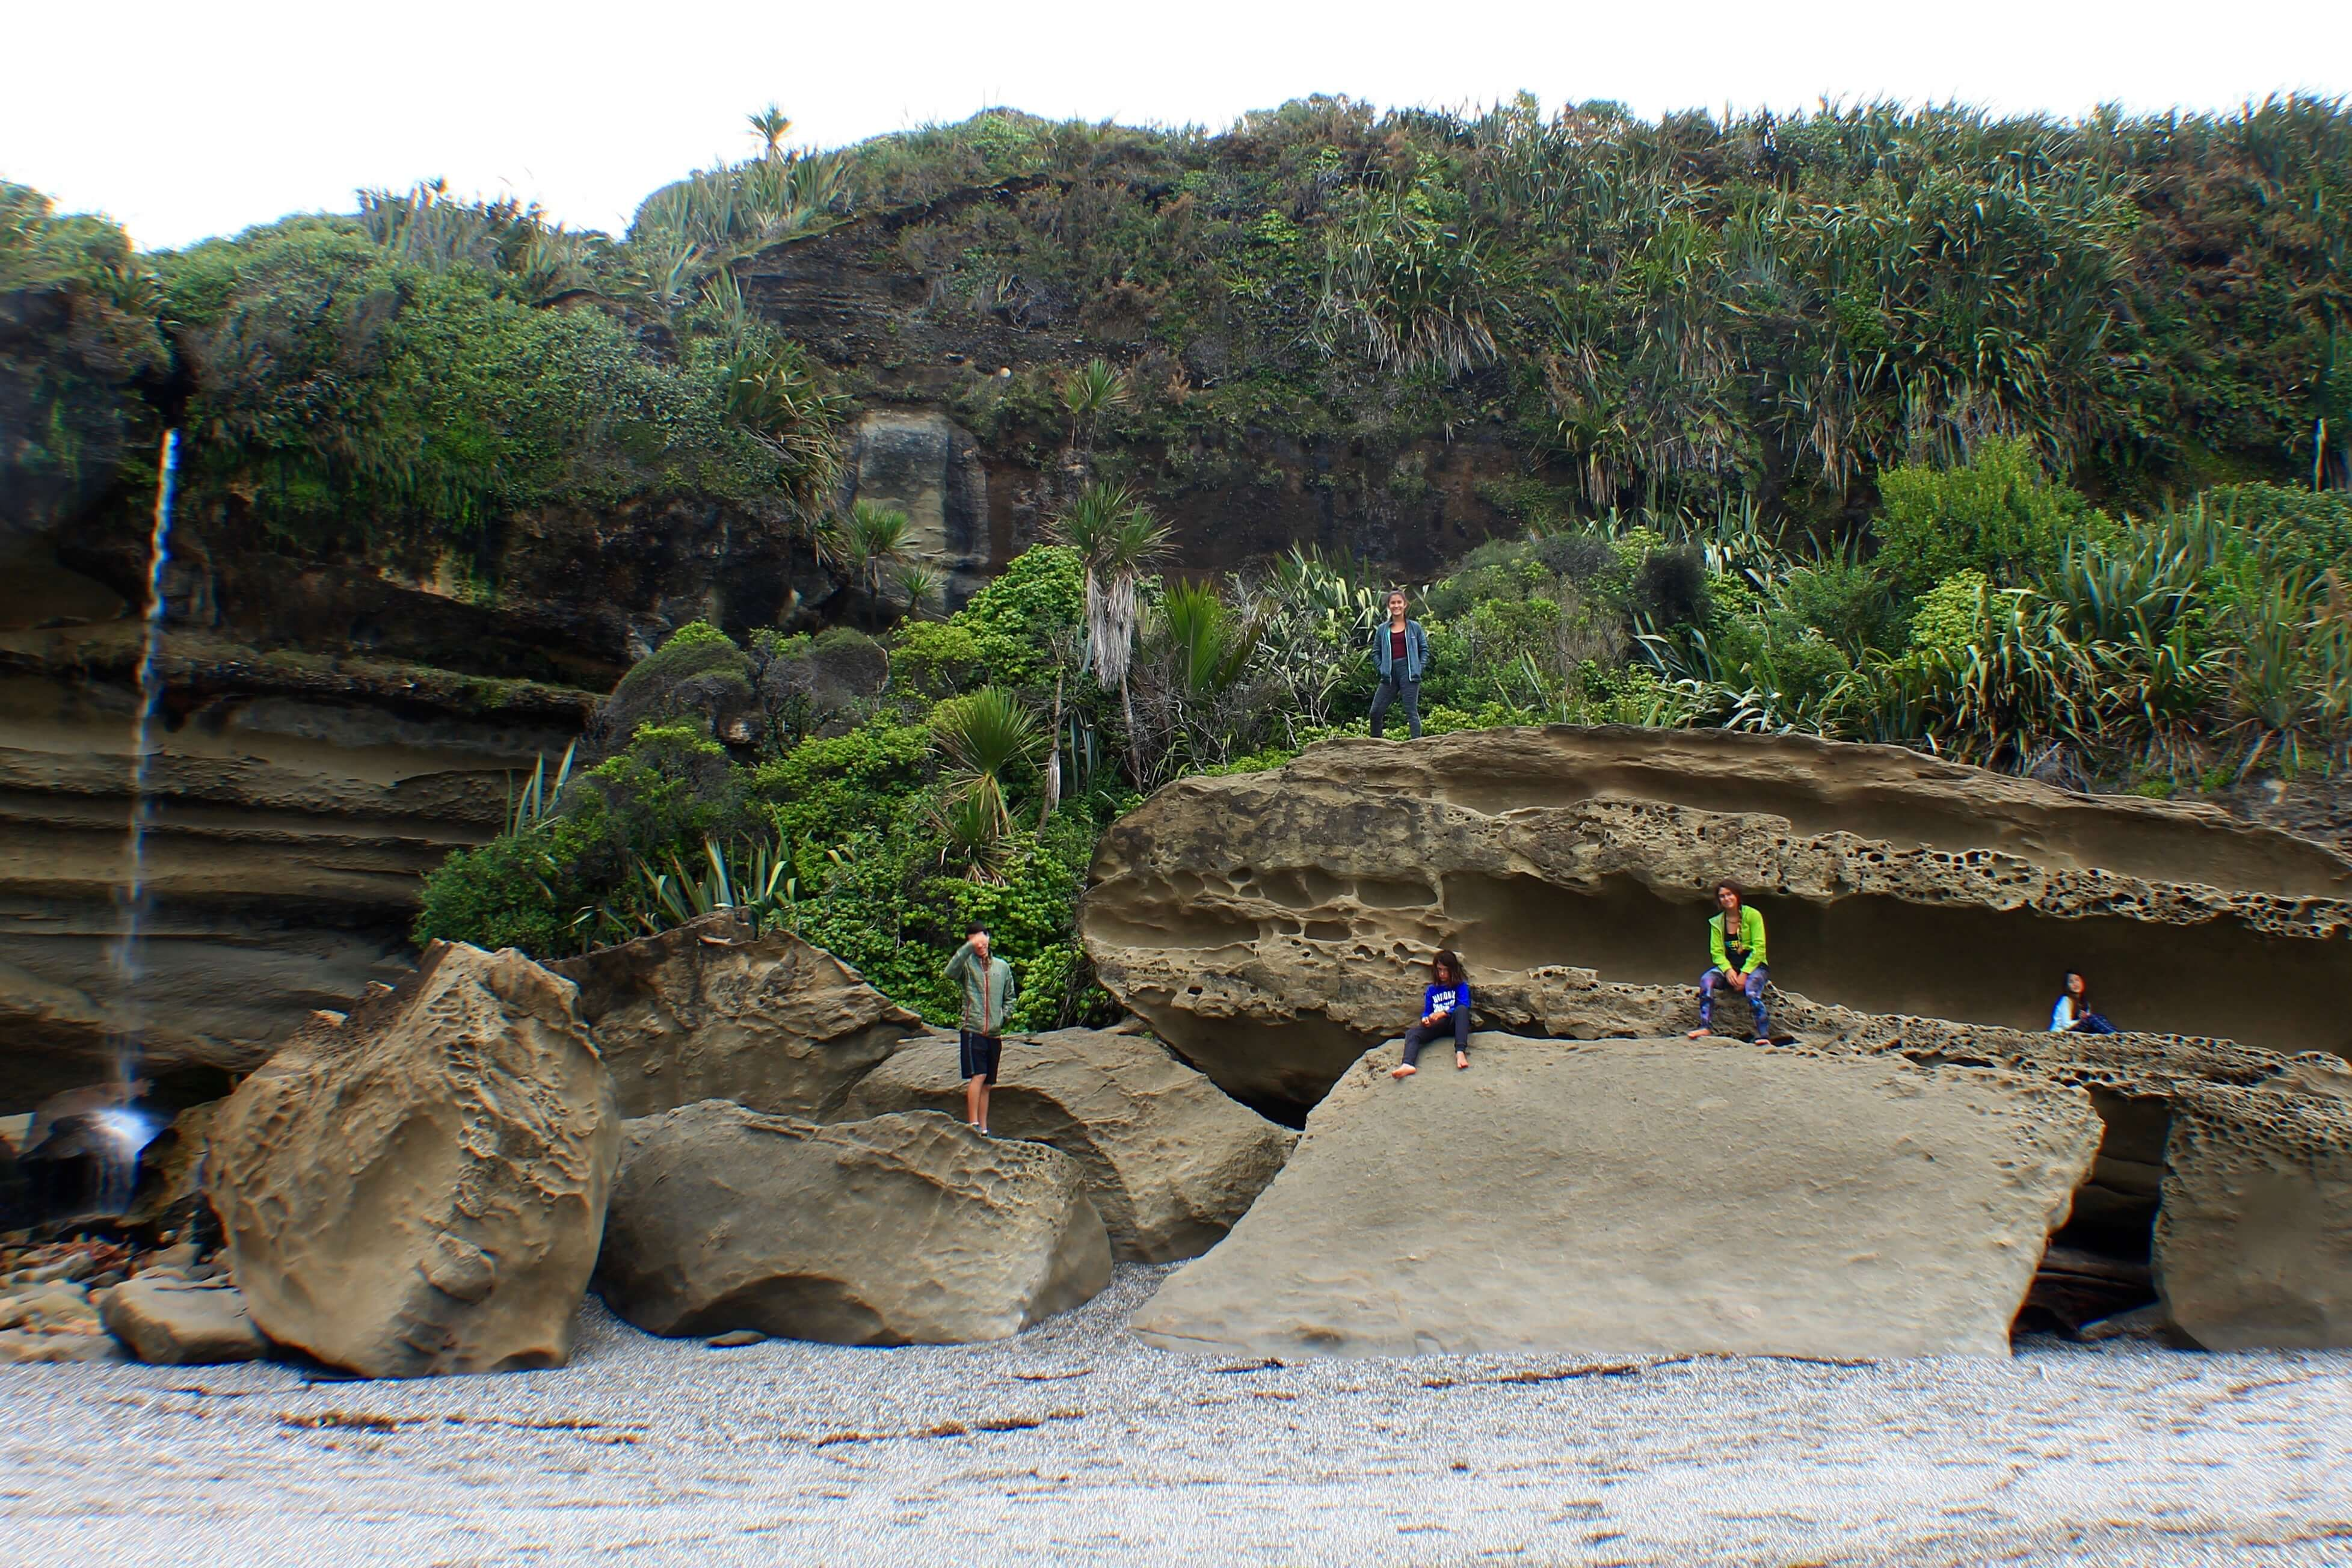 Truman Track, 7 Things to do on the West Coast, New Zealand